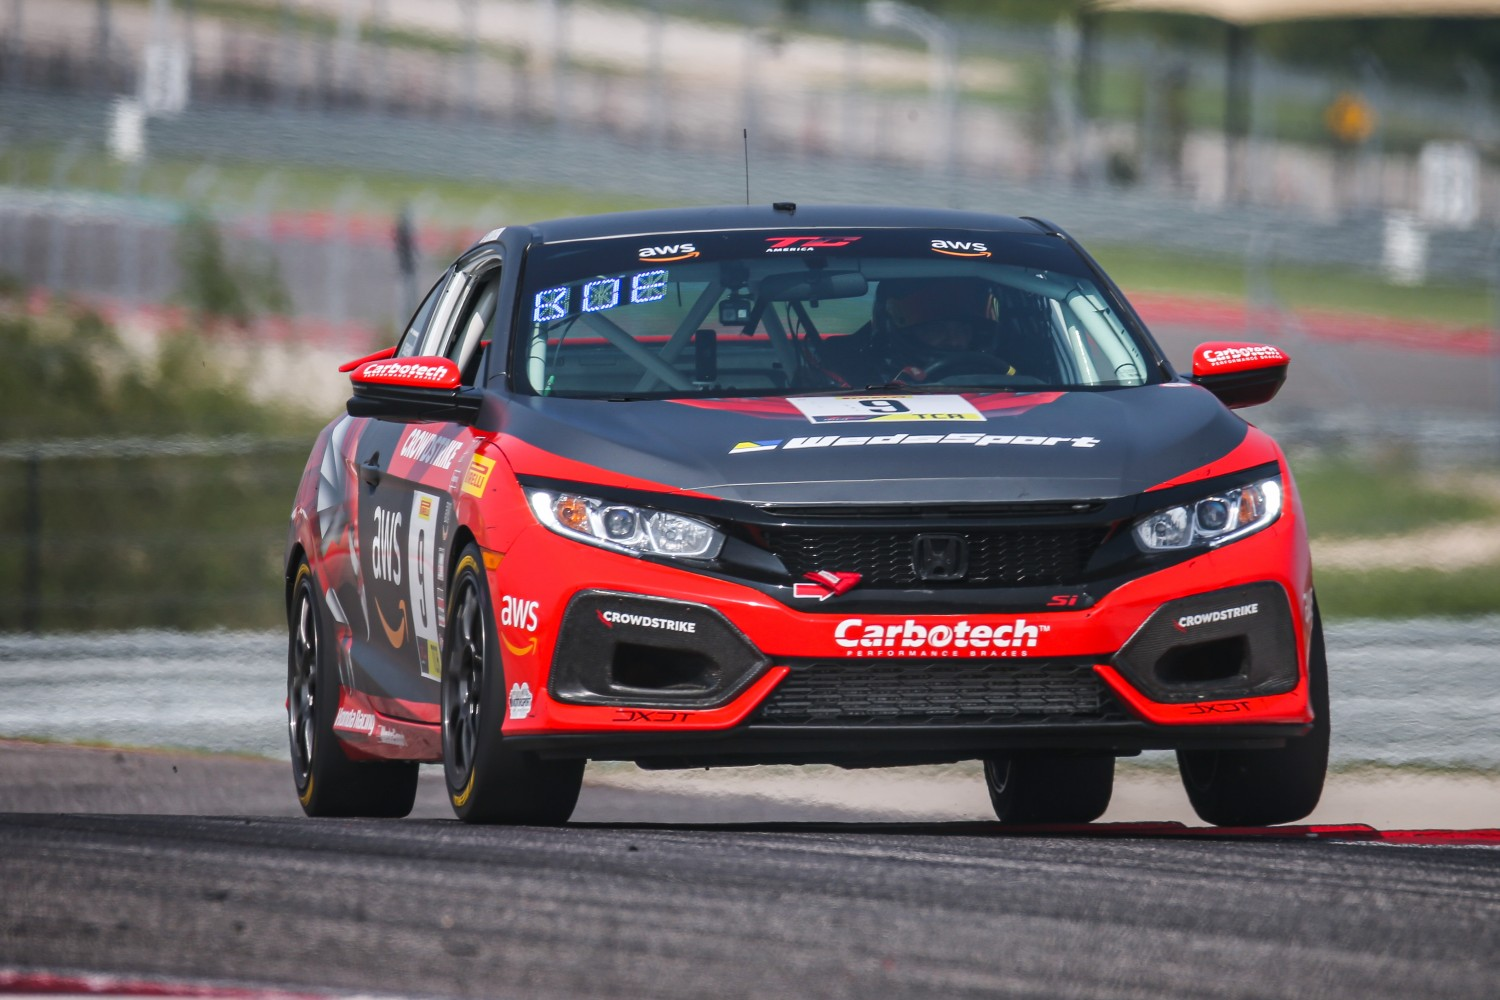 #9 Honda Civic Si of Kevin Boehm, Boehm Racing, TCA, SRO America, Circuit of the Americas, Austin TX, September 2020.  | Sarah Weeks/SRO